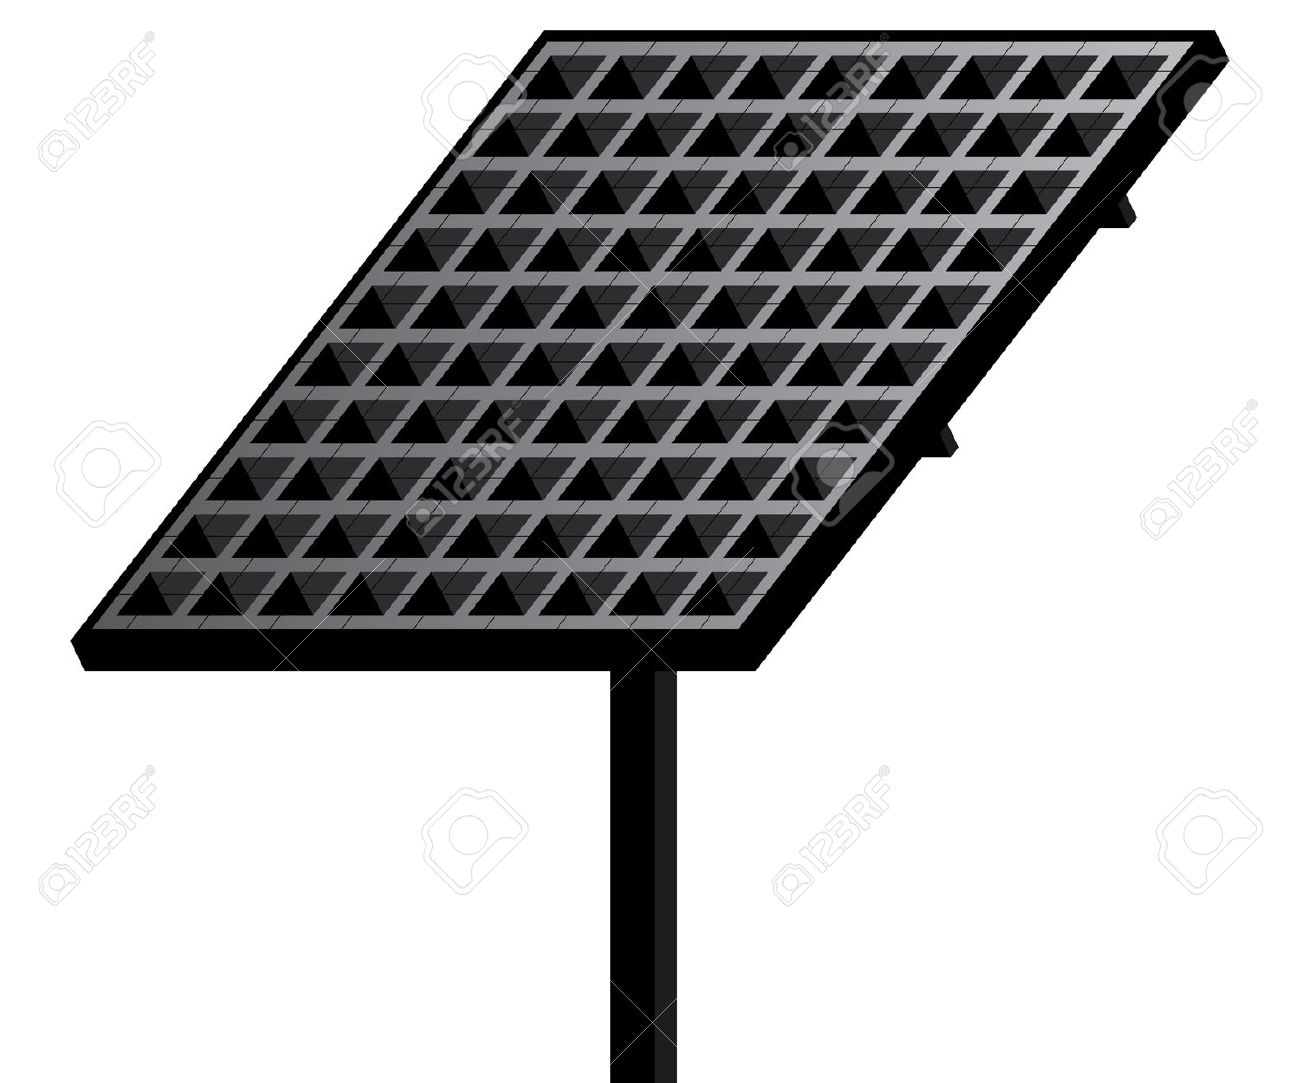 Solar clipart #9, Download drawings